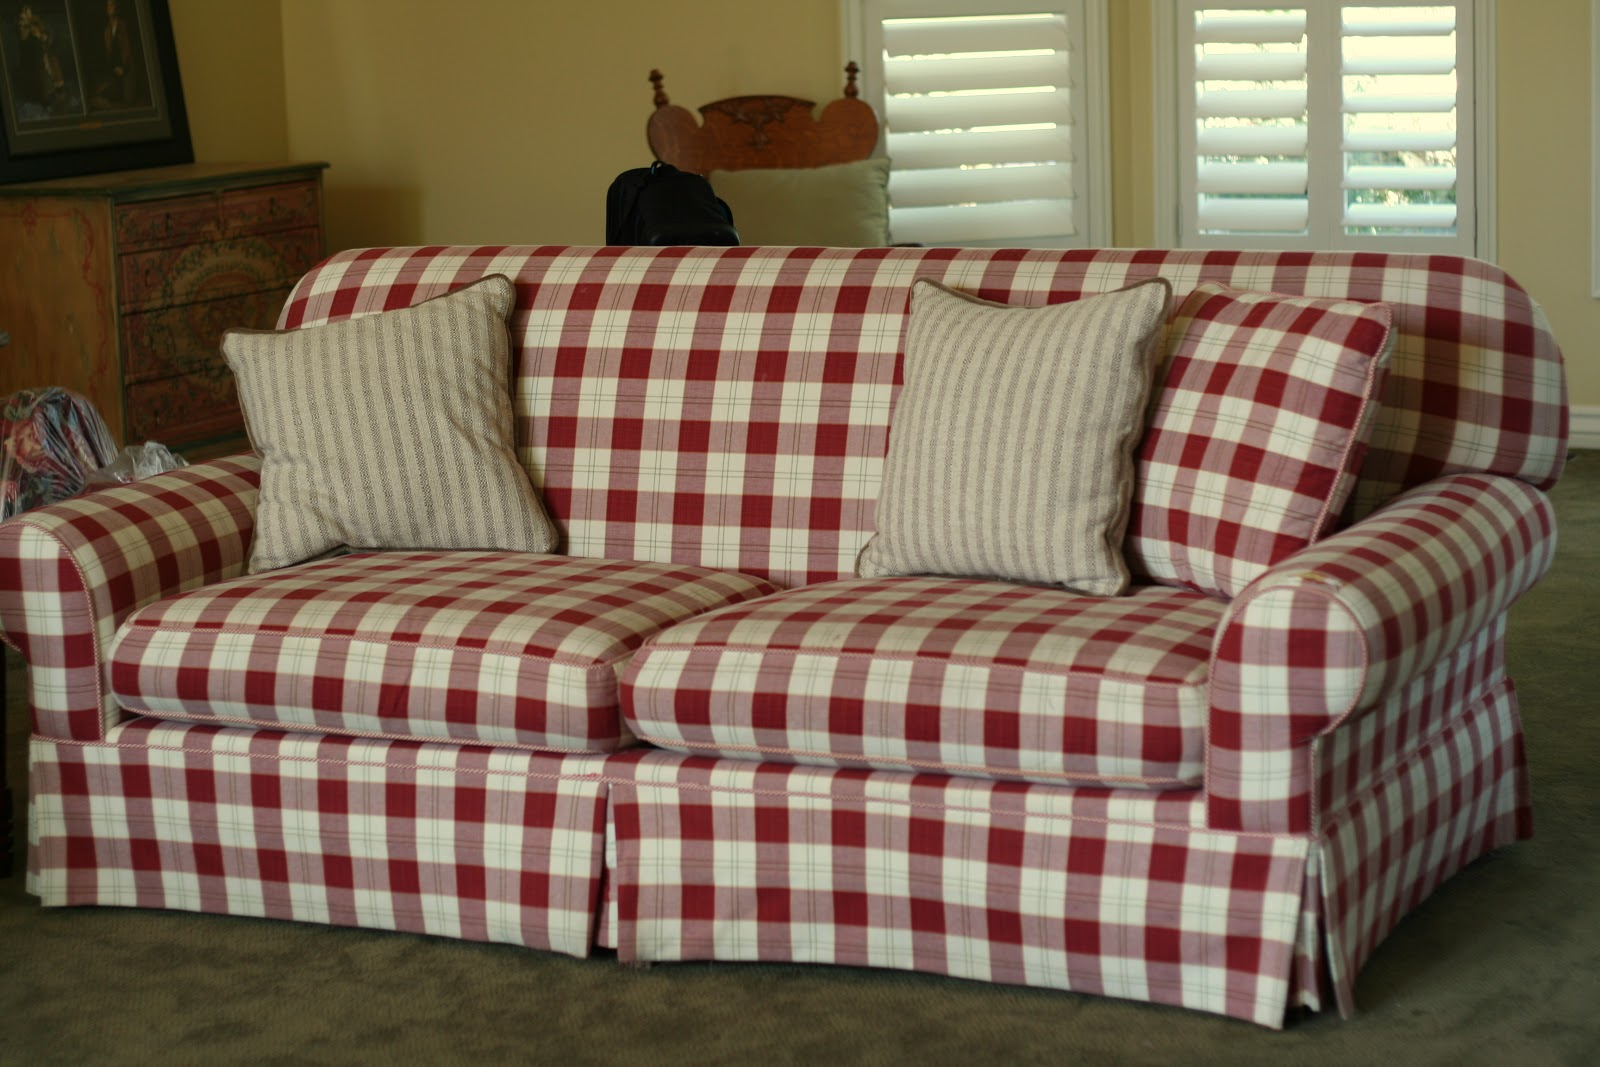 Country Plaid Sofa Sets Rumah Wooden Frame Bed Couches